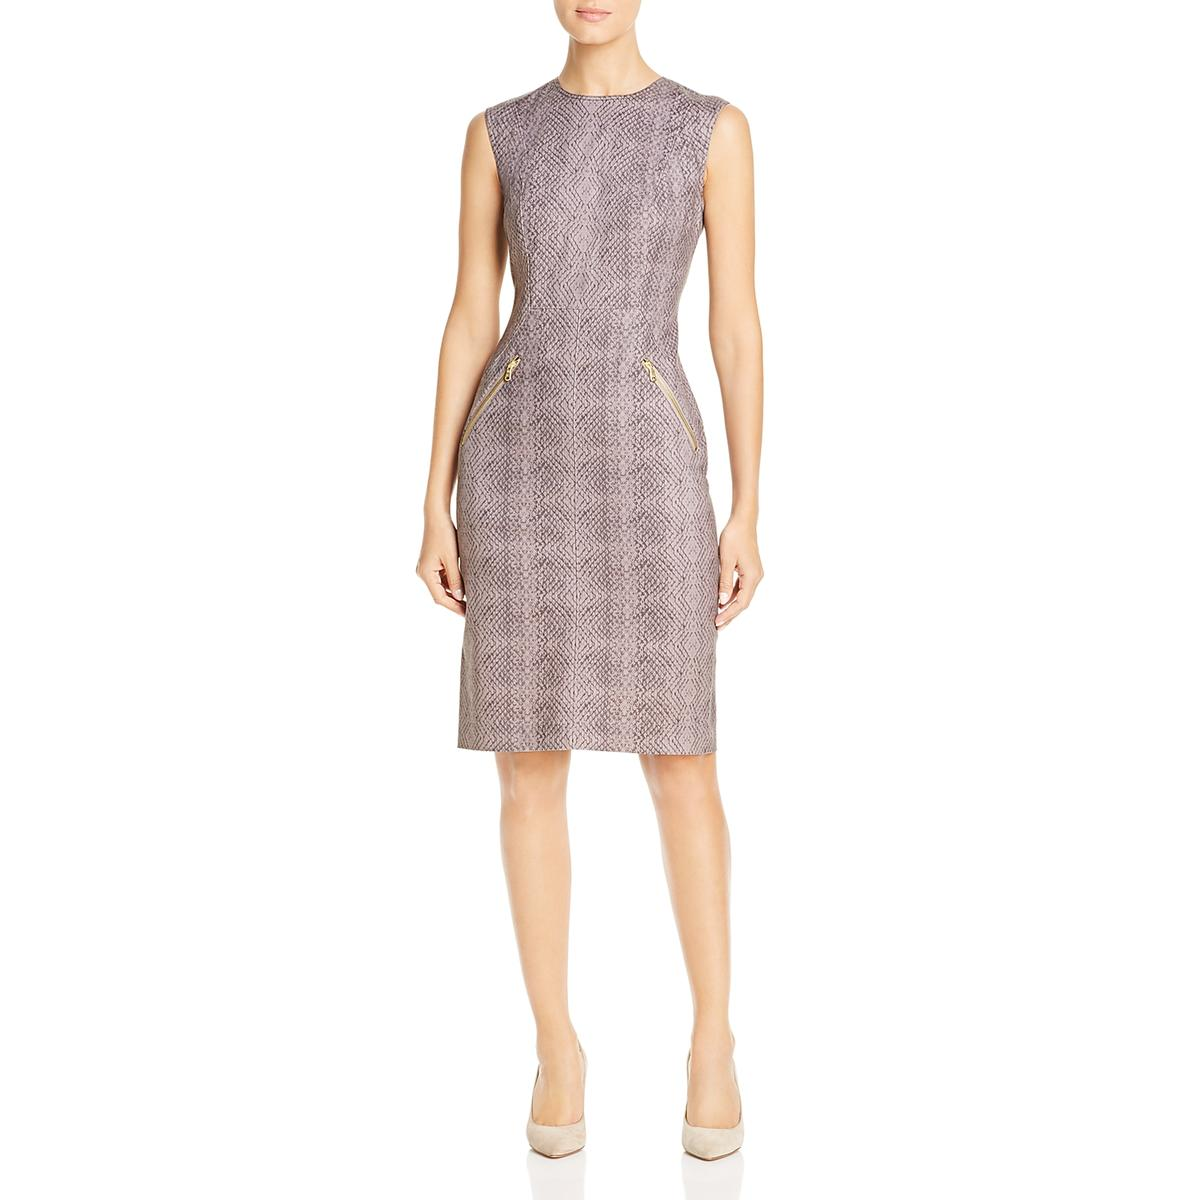 Donna Karan Womens Office Sleeveless Sheath Dress